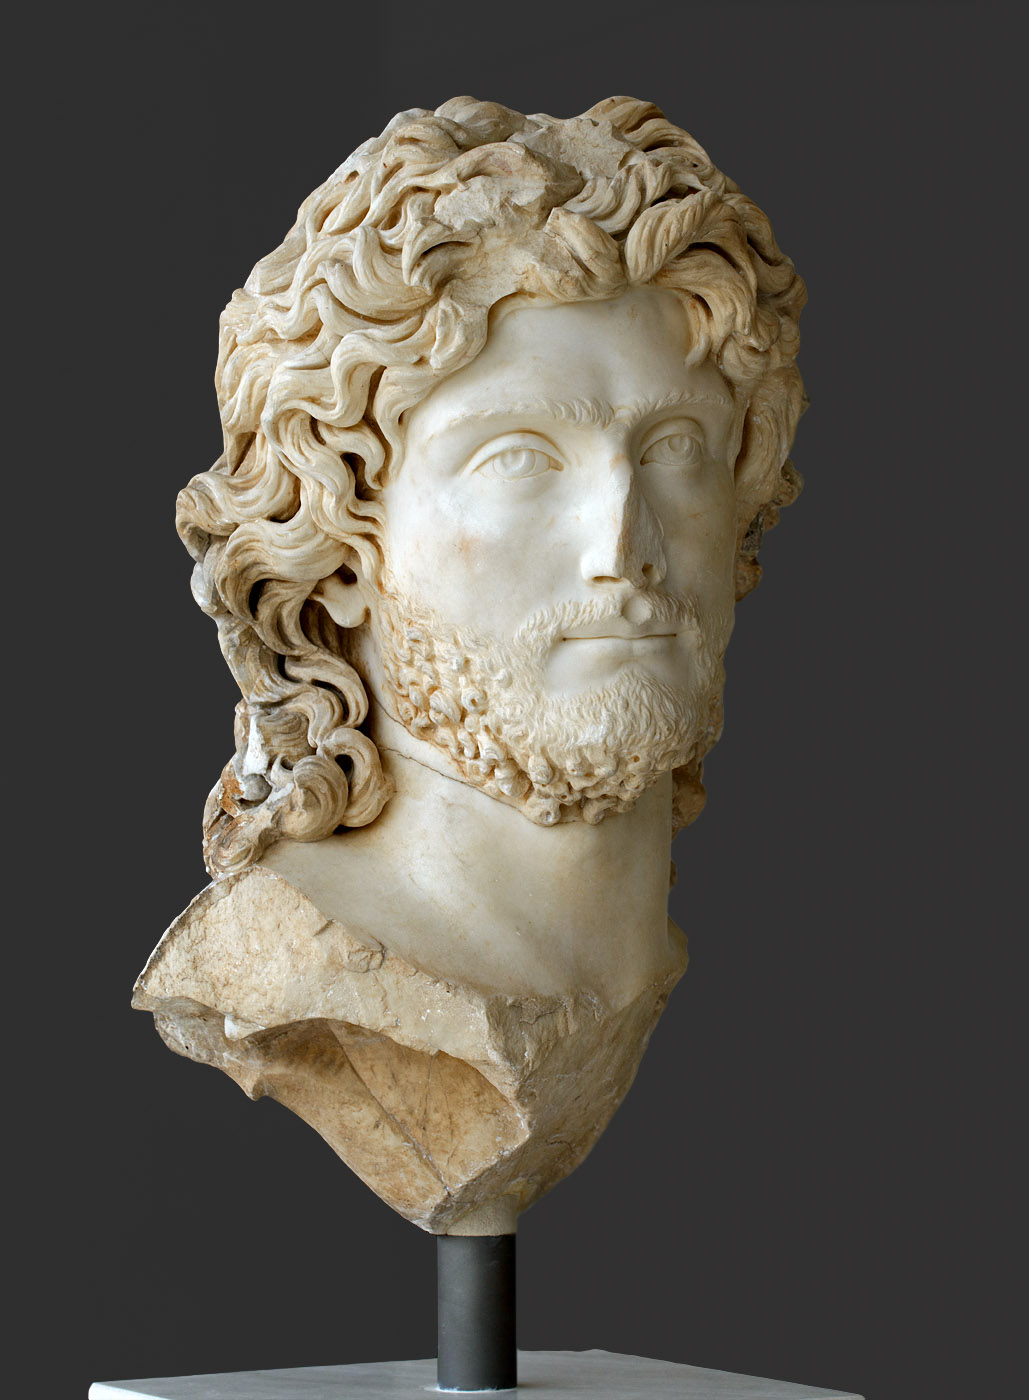 Portrait of a ruler, presumably Sauromates II, king of Kimmerian Bosphorus. Marble. Late 2nd cent. CE. Inv. No. NAM 419. Athens, New Acropolis Museum